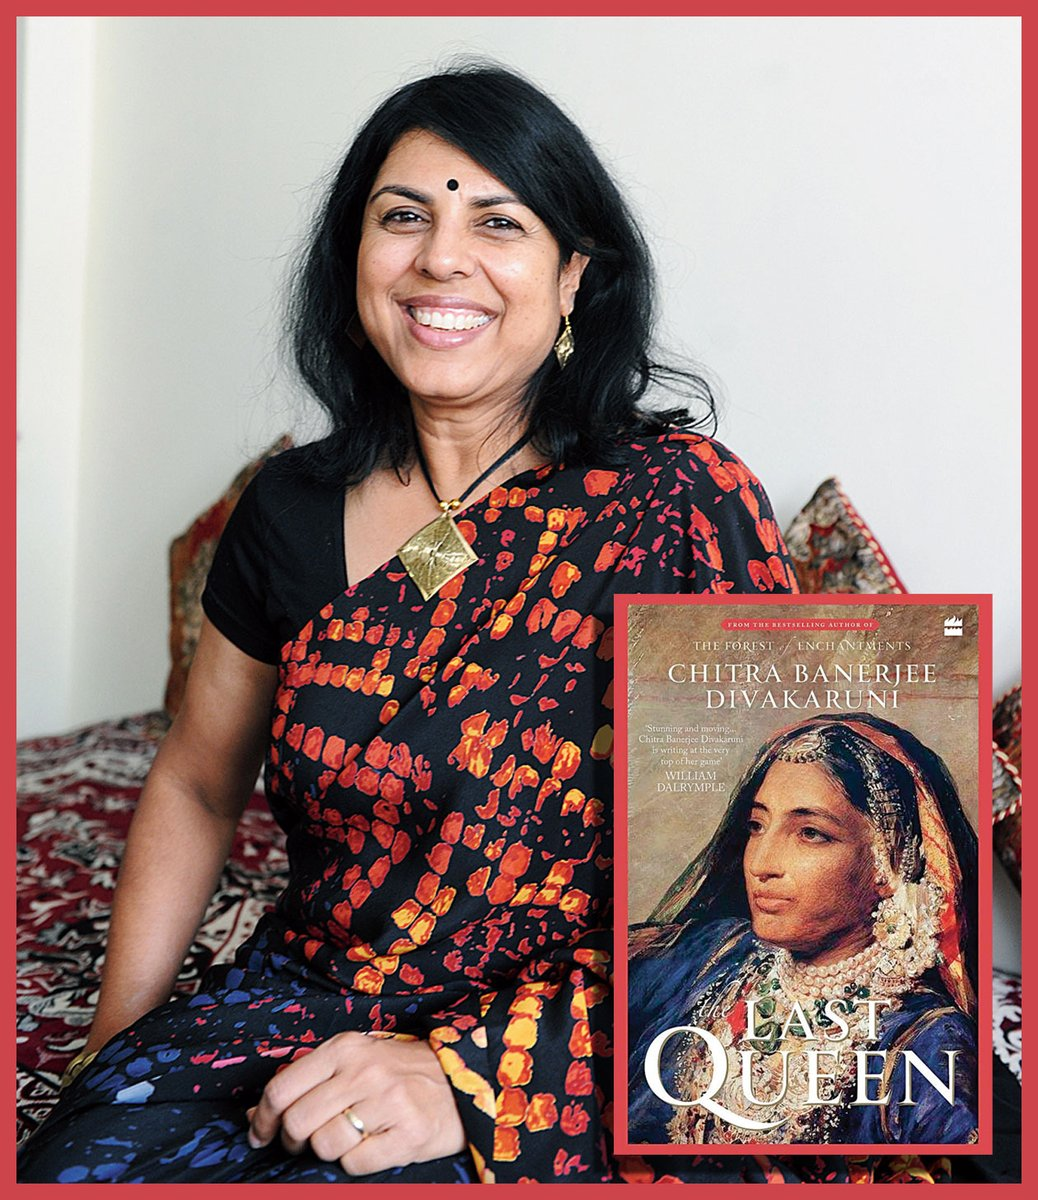 Chitra Banerjee Divakaruni on what drew her to write the story of Rani Jindan of Punjab, moving to historical novels and living through the pandemic     @HarperCollinsIN @cdivakaruni